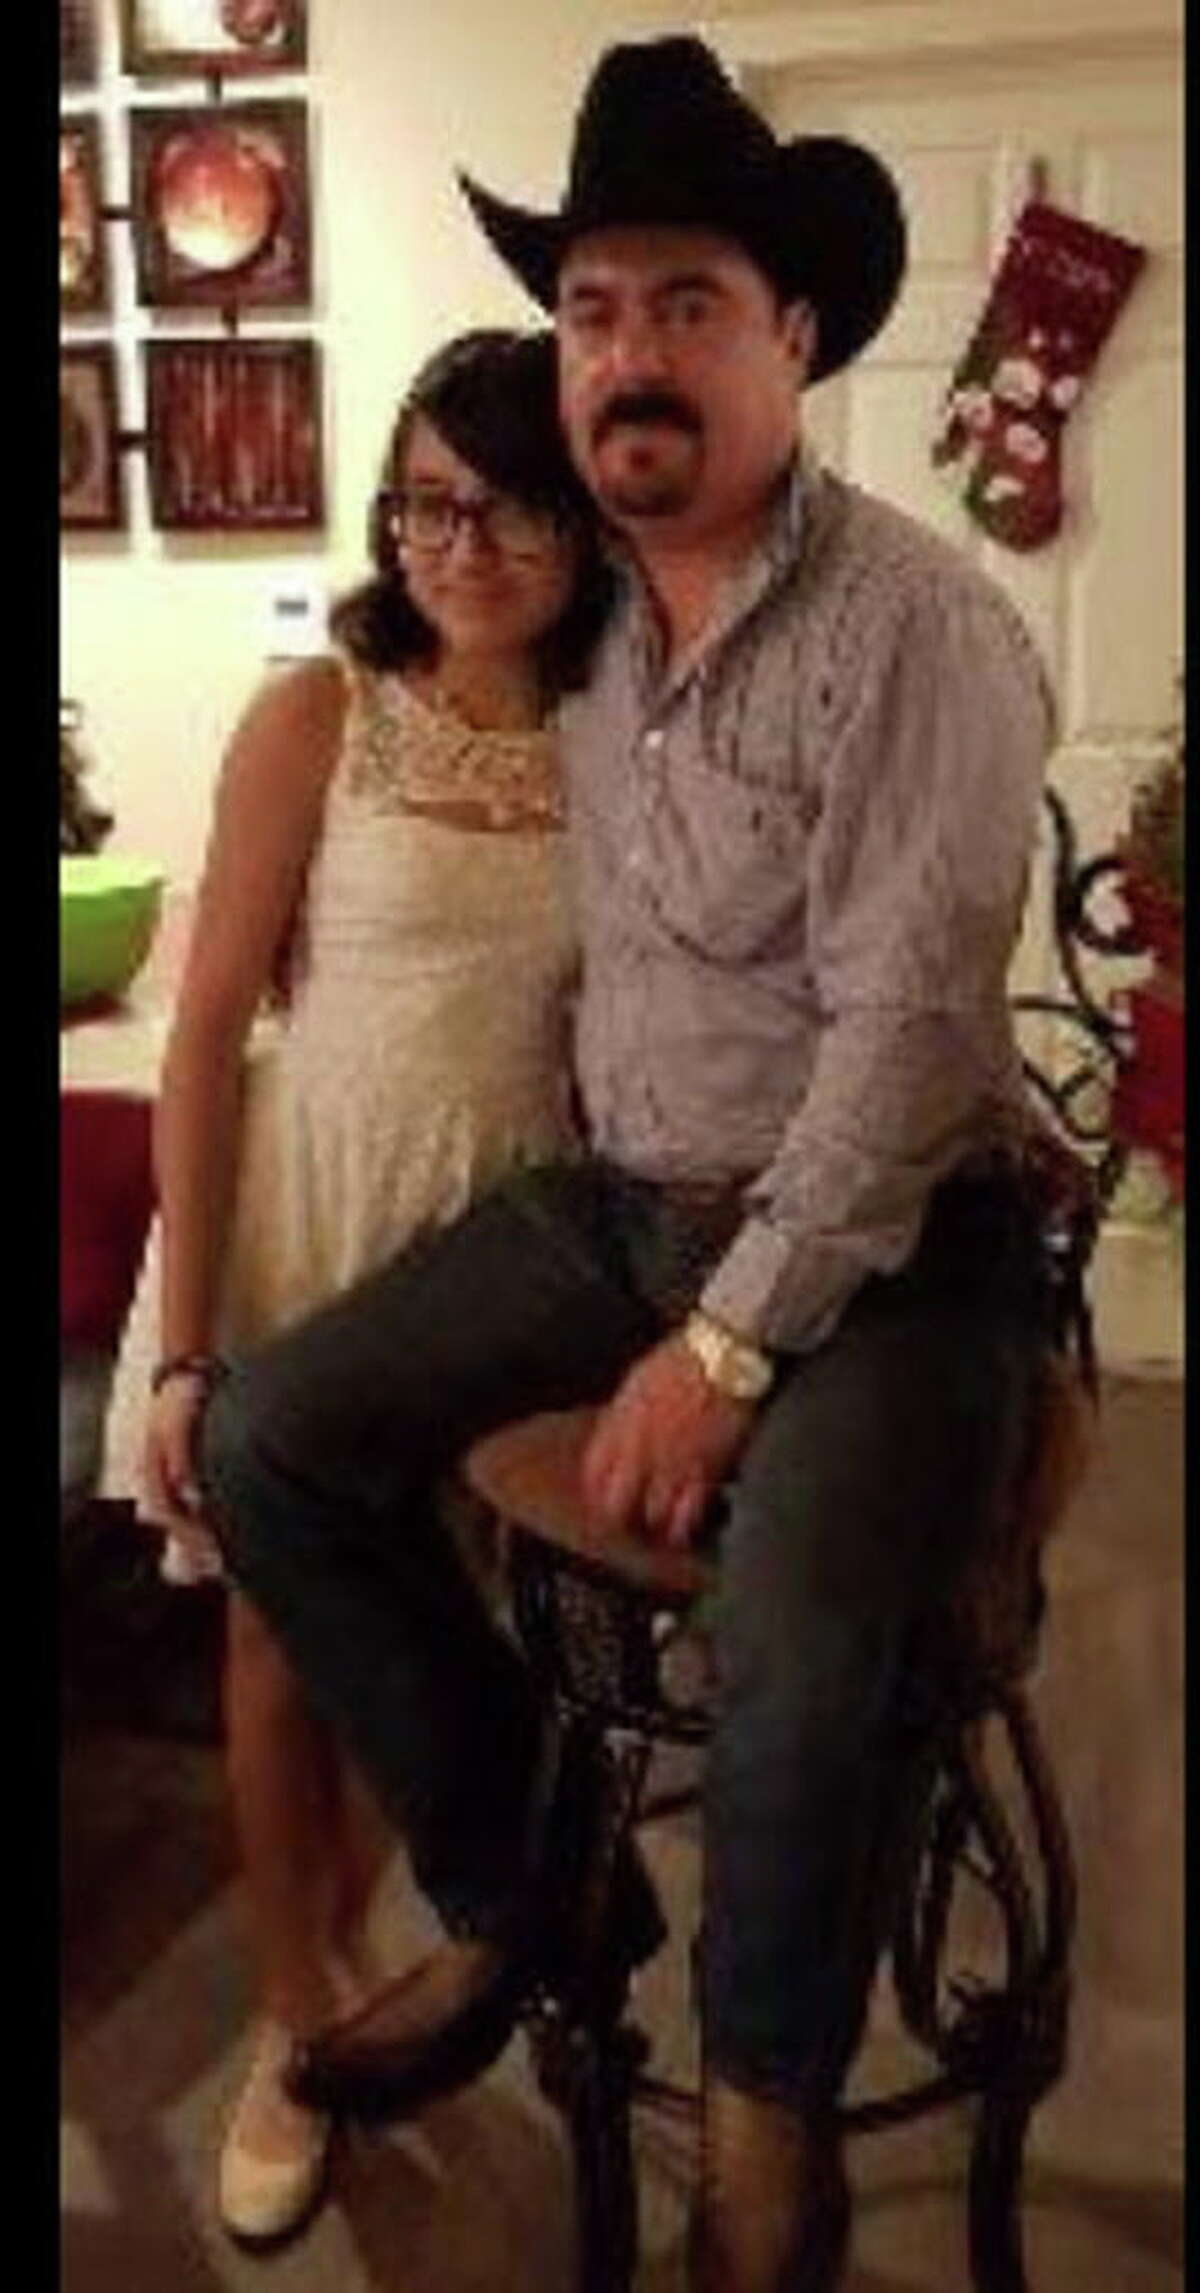 Missing 14-year-old Adriana Coronado with her father, Caesar Coronado, who was found dead in an apparent homicide Sunday.